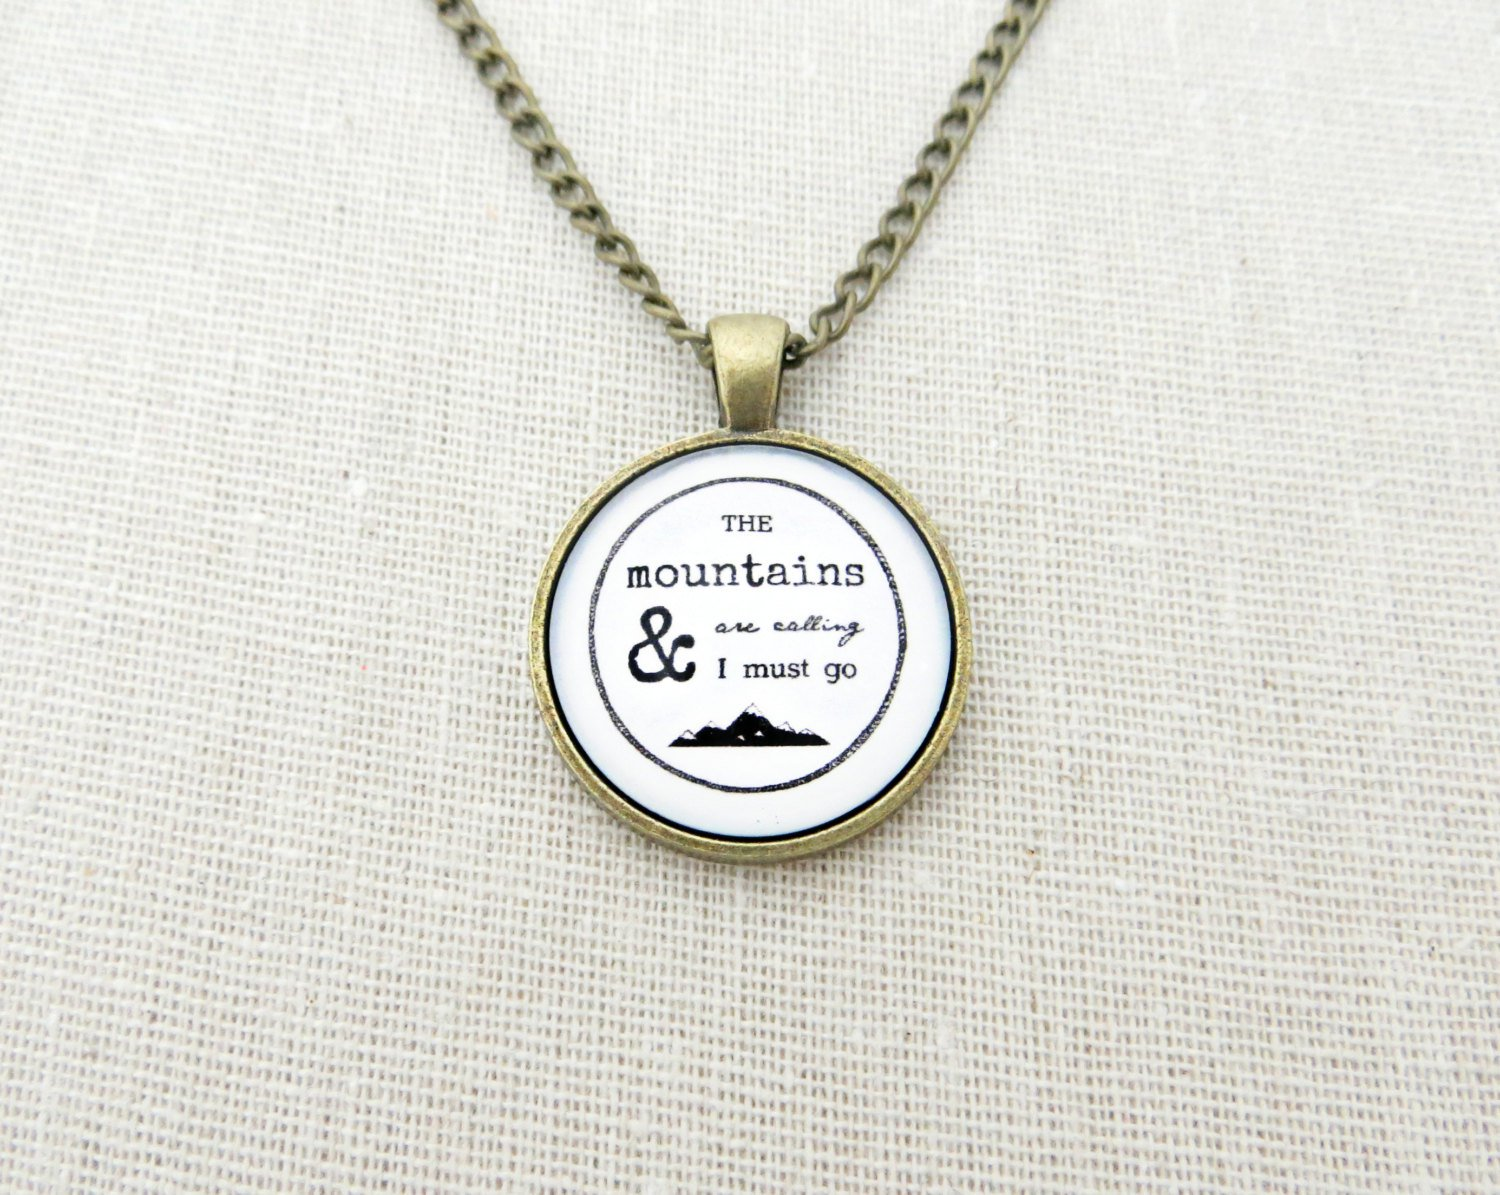 The Mountains Are Calling & I Must Go Inspirational Quote Pendant Necklace (Brass 18 inches)